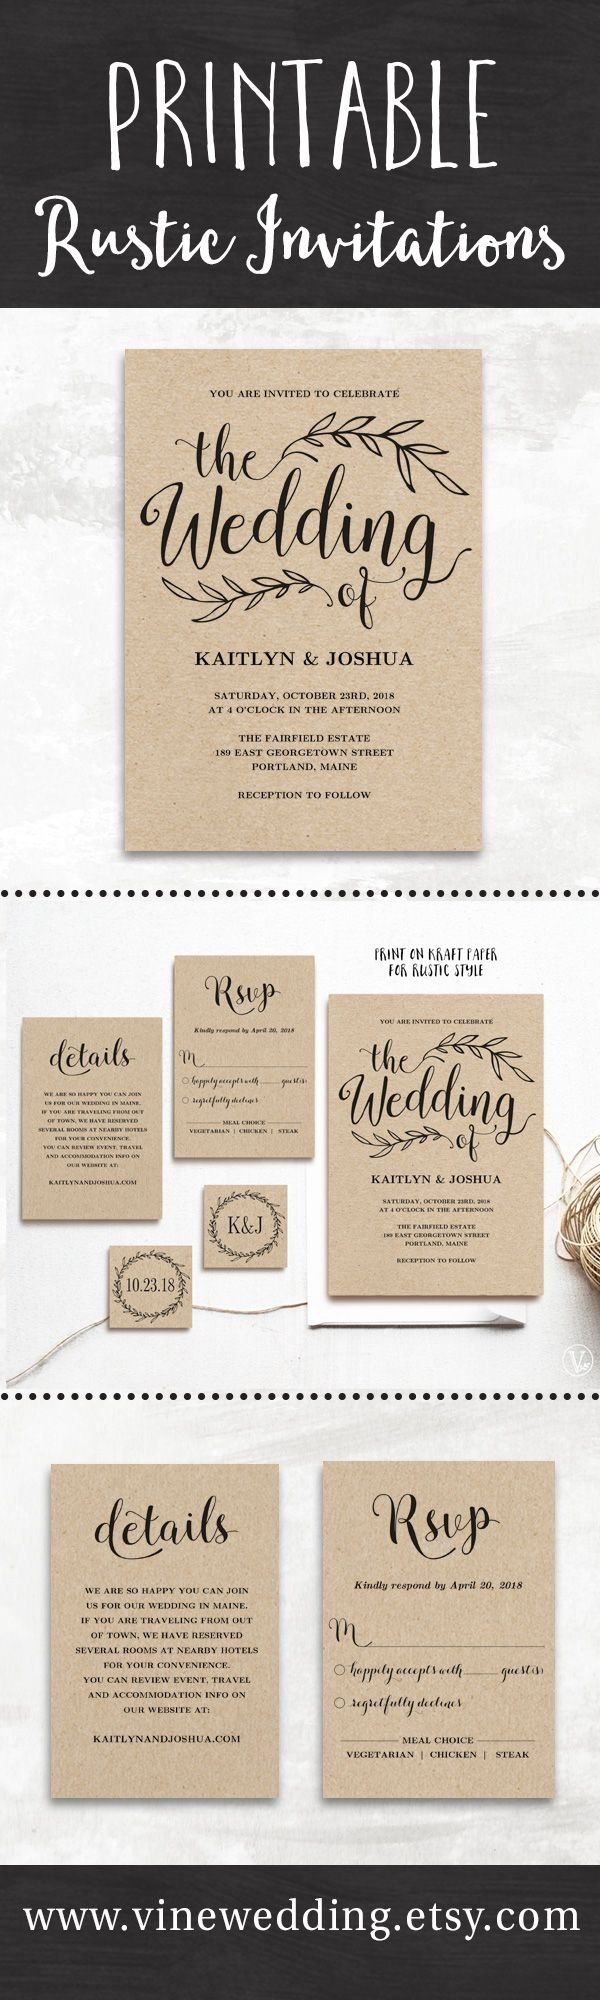 paper style wedding invitations%0A Beautiful rustic wedding invitations  Editable instant download templates  you can print as many as you